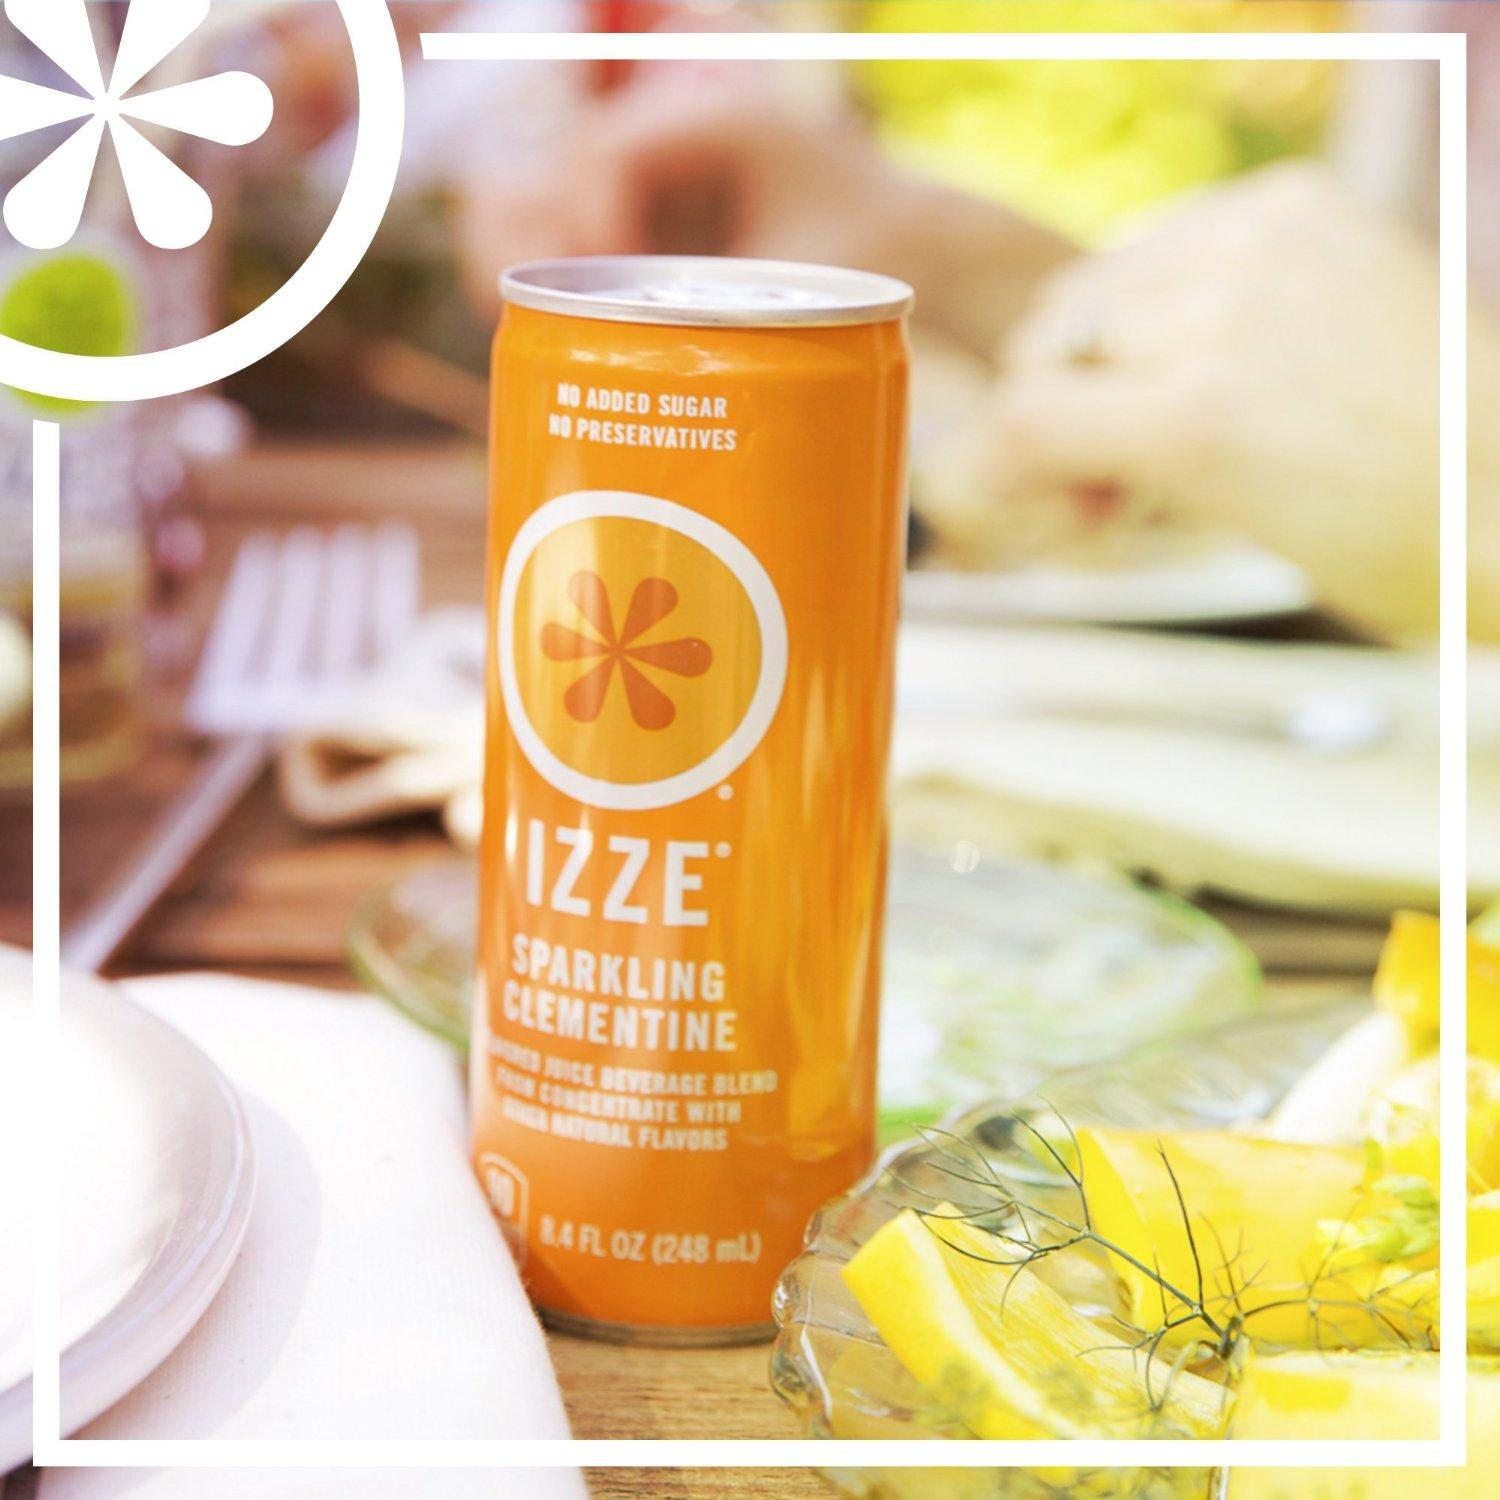 IZZE Fortified Sparkling Juice, Clementine, 8.4-Ounce Cans (Pack of 24)